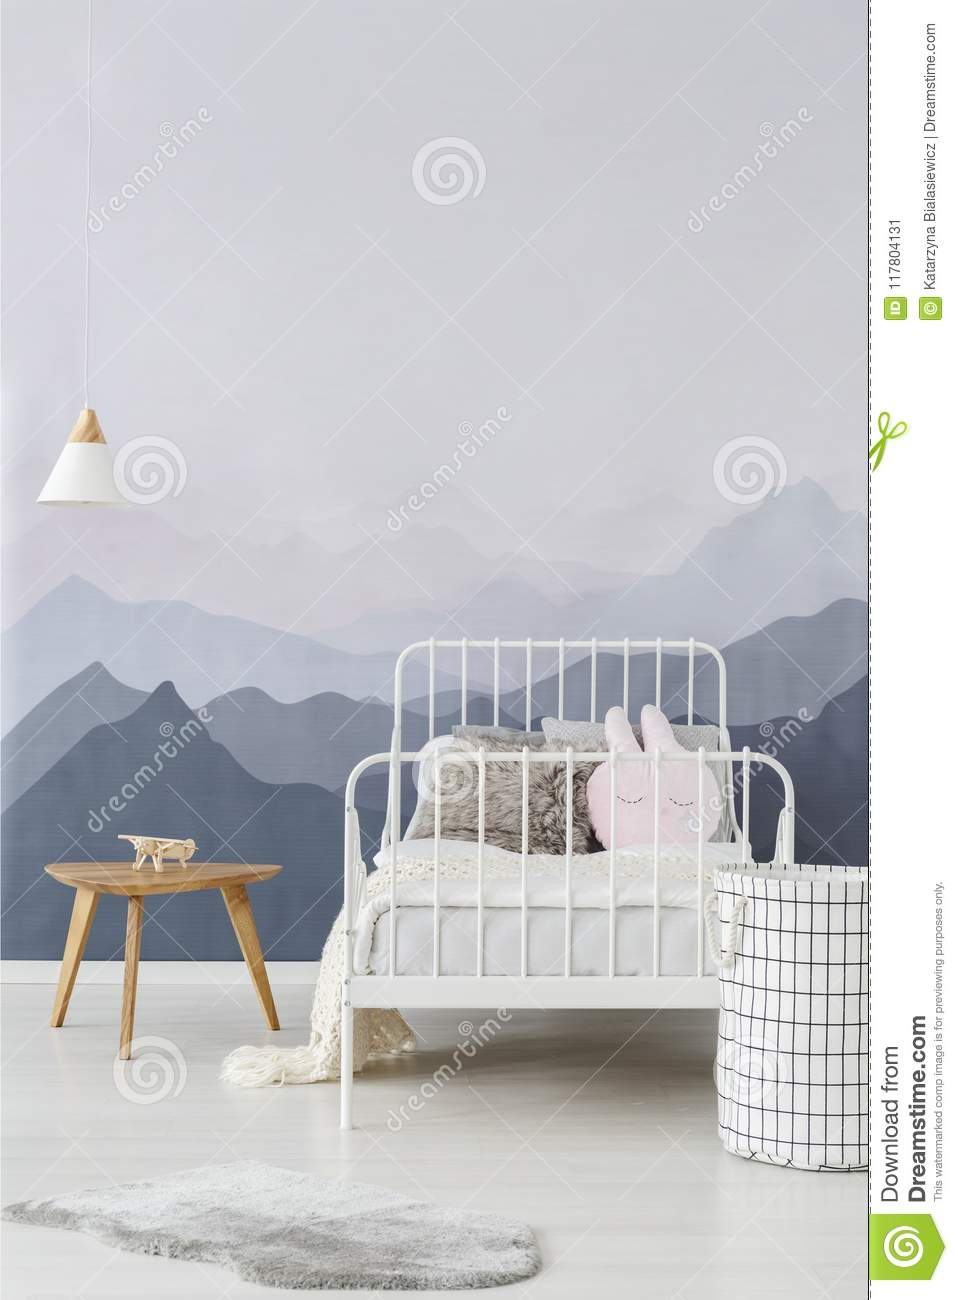 Mountains Wallpaper In Child Bedroom Stock Image Image Of Contemporary Scandi 117804131